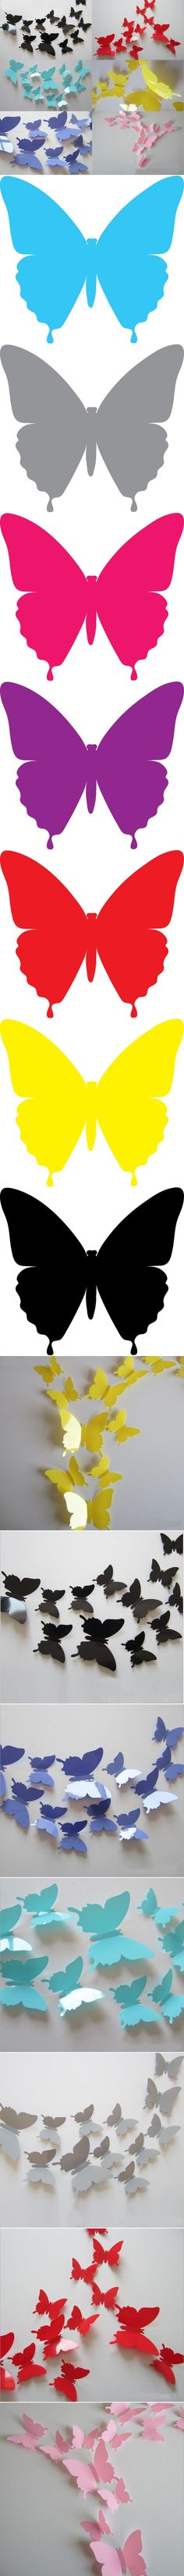 Discover thousands of images about How to Make Easy DIY Paper Butterflies Butterfly Party, Butterfly Crafts, Butterfly Wall, Diy Butterfly Decorations, Diy Paper, Paper Art, Paper Crafts, Diy And Crafts, Crafts For Kids